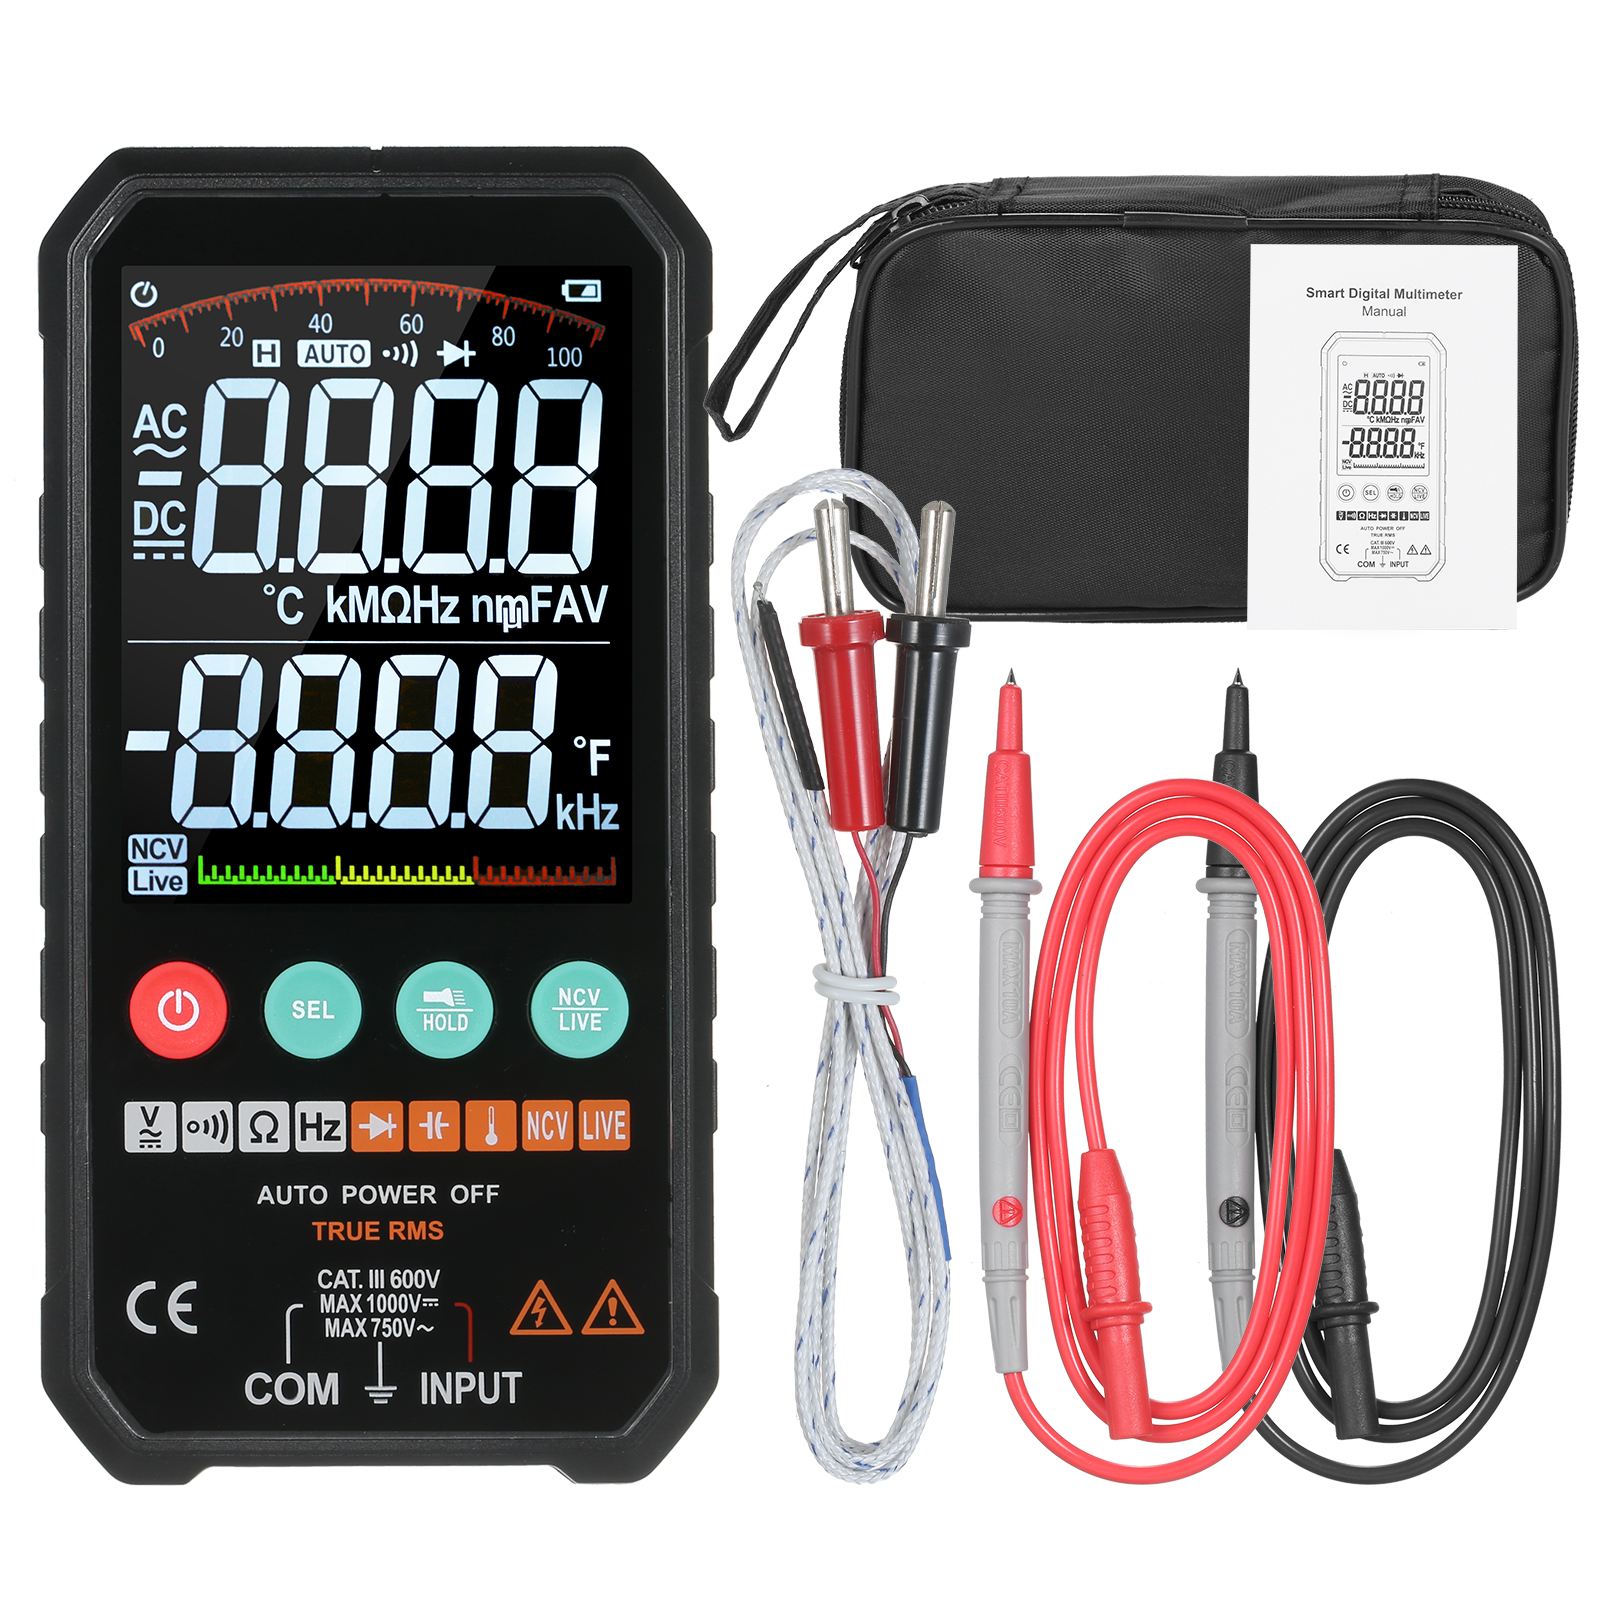 FY107C/FY107B 6000counts Digital Multimeter Ture RMS AC DC NCV Transistor Capacitor Temperature